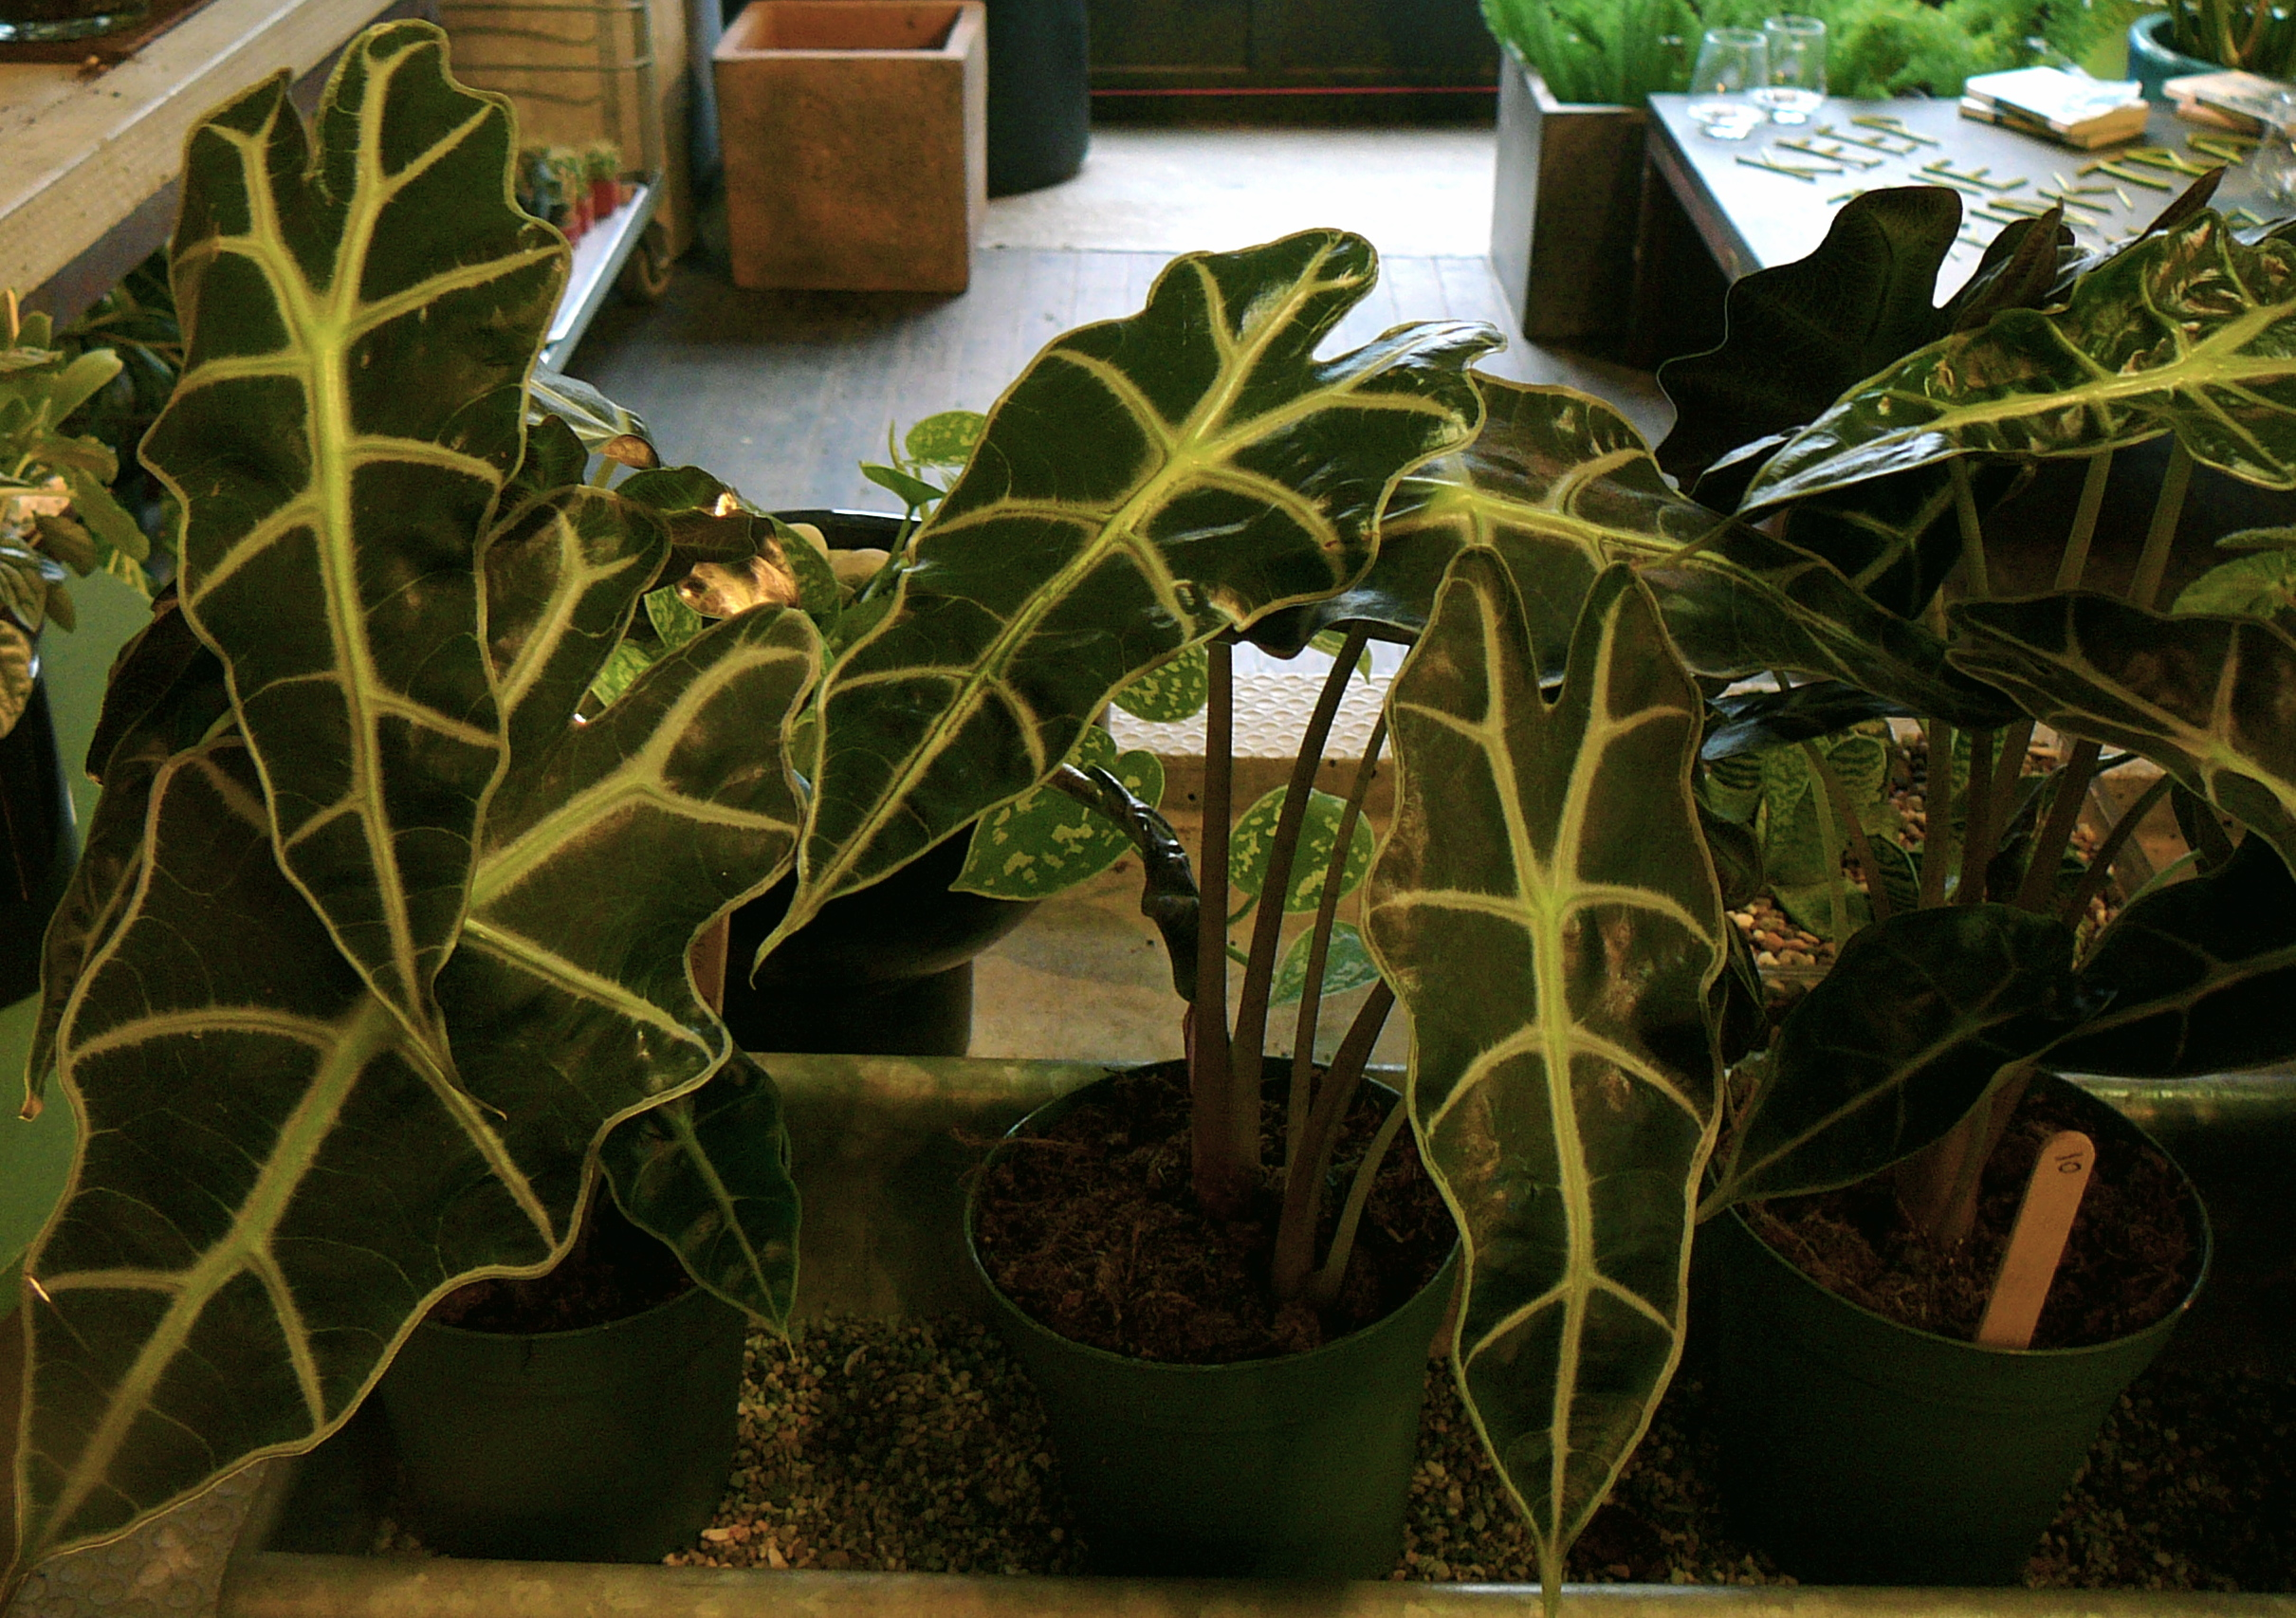 Unusual House Plants At The Palm Room The Palm Room: 7 uncommon indoor plants